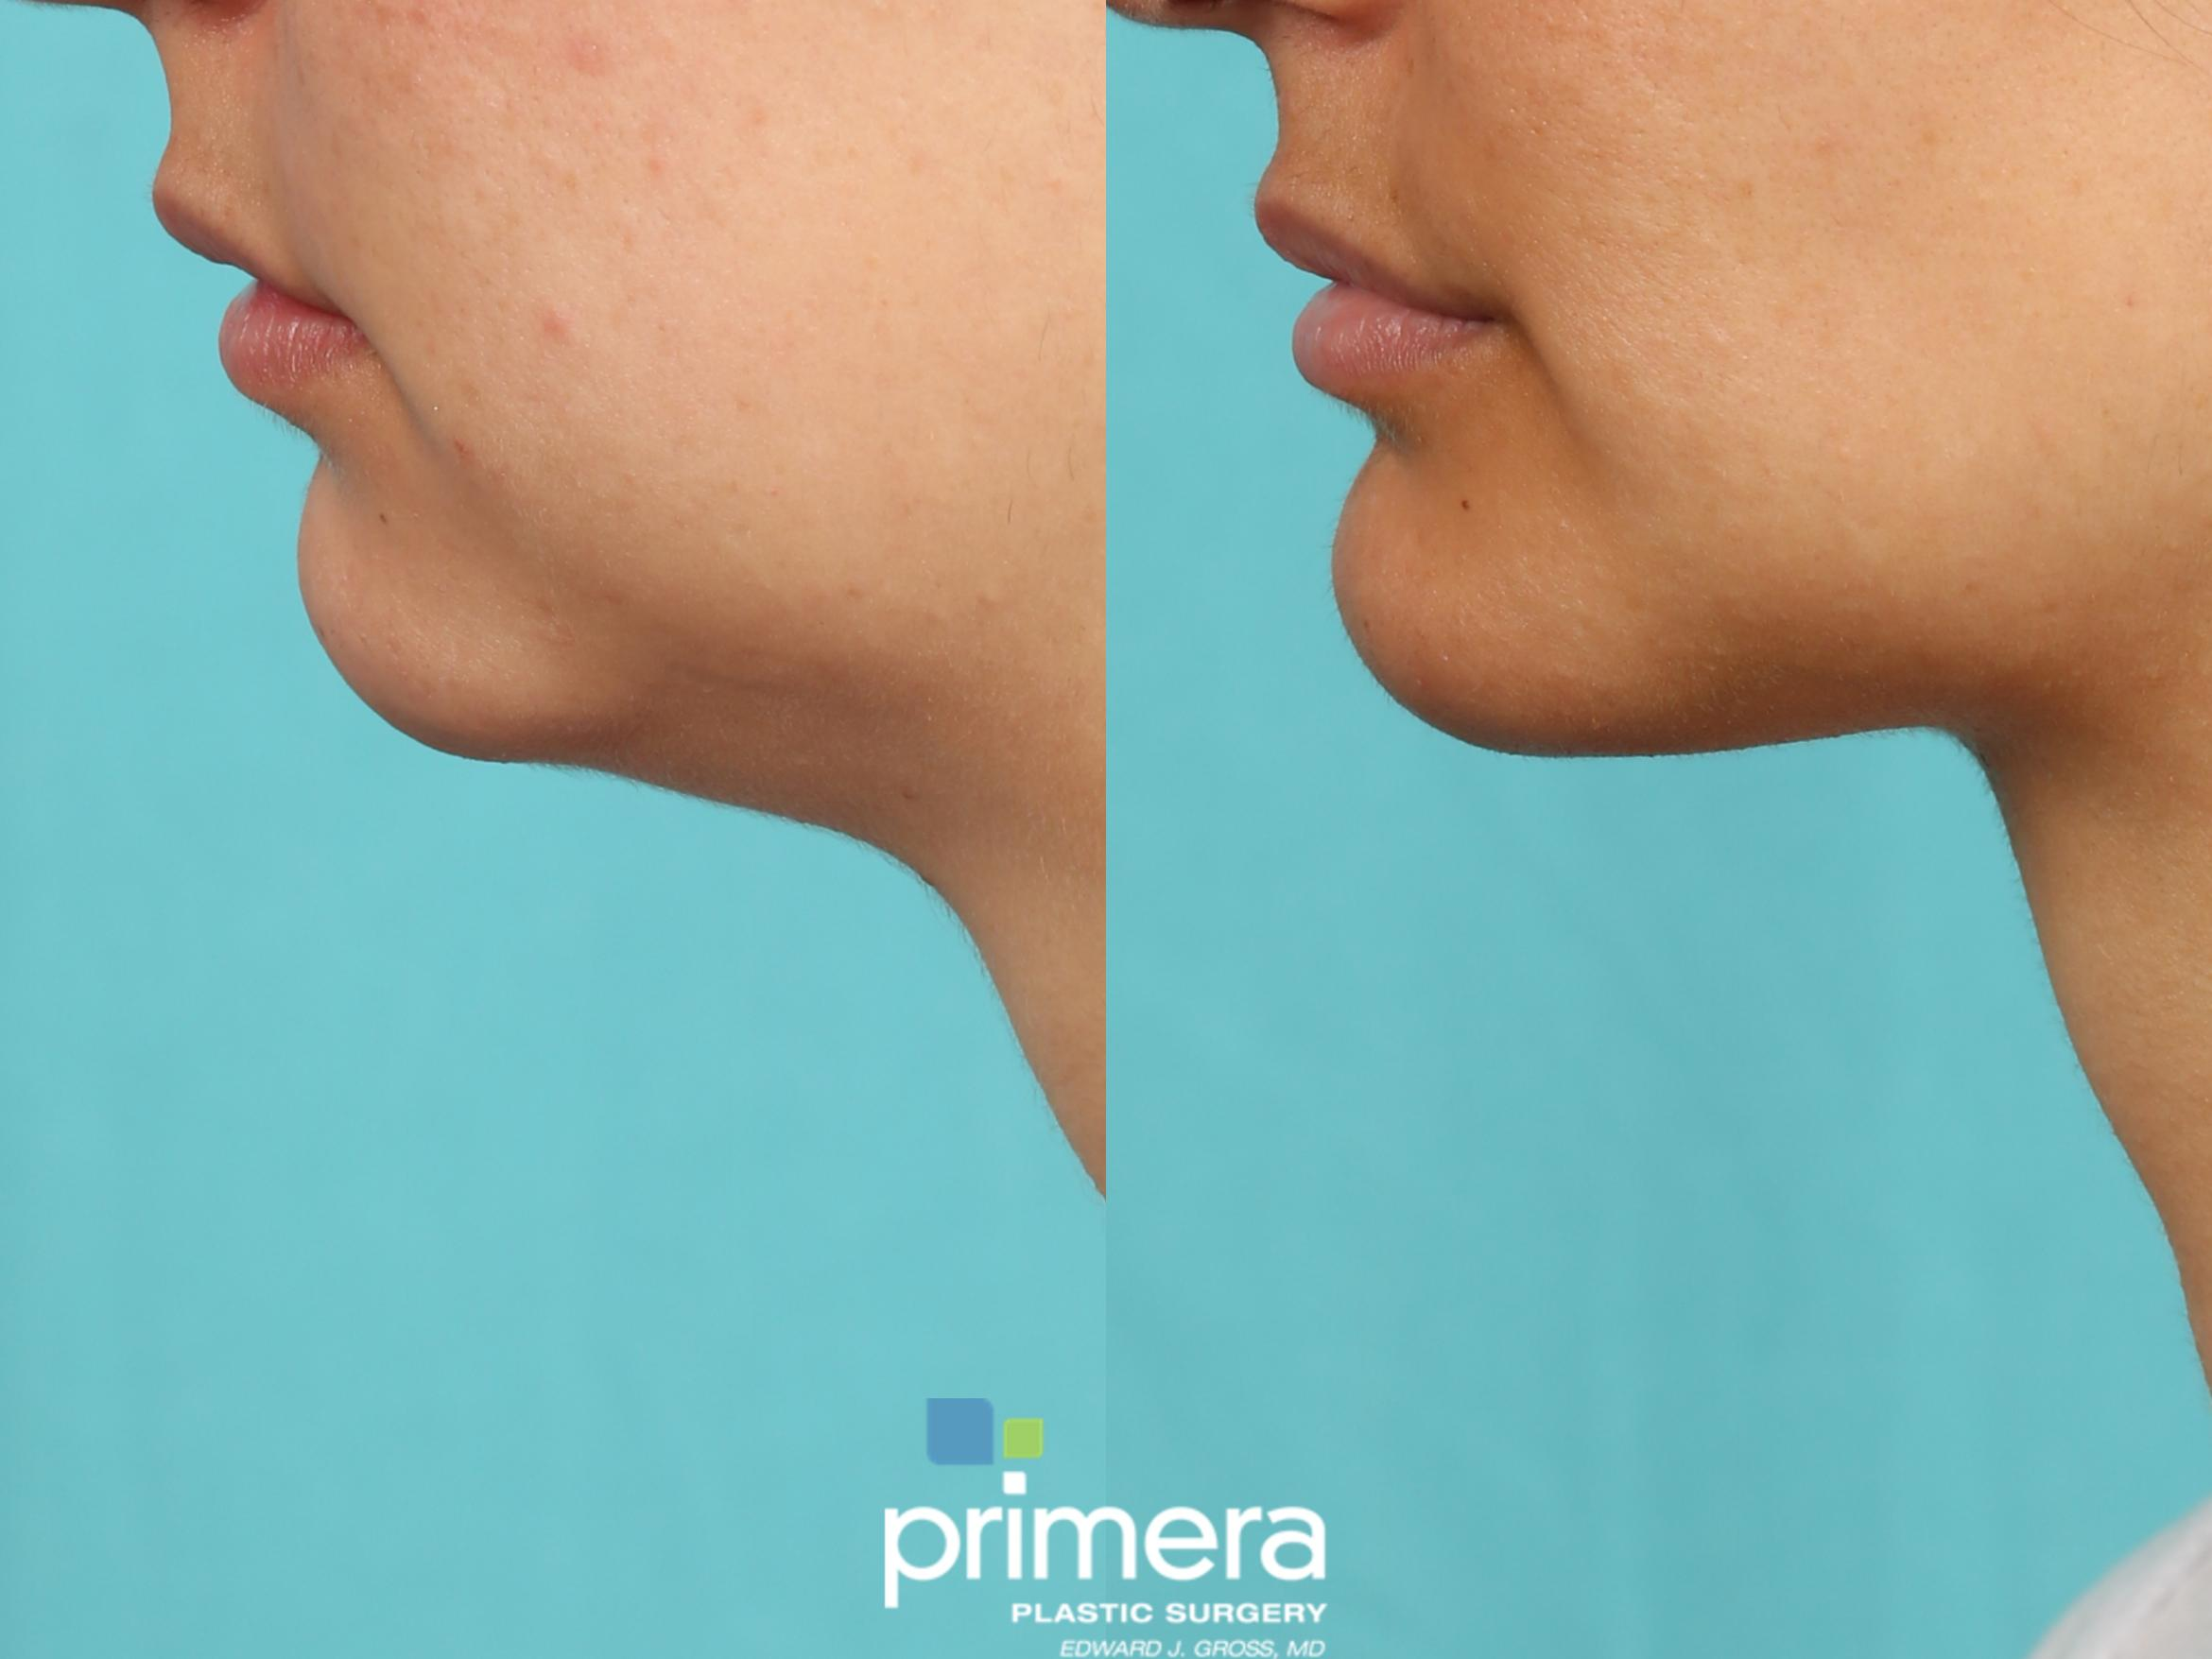 Submentoplasty (Chin Tuck) Before & After Photo | Orlando, Florida | Primera Plastic Surgery